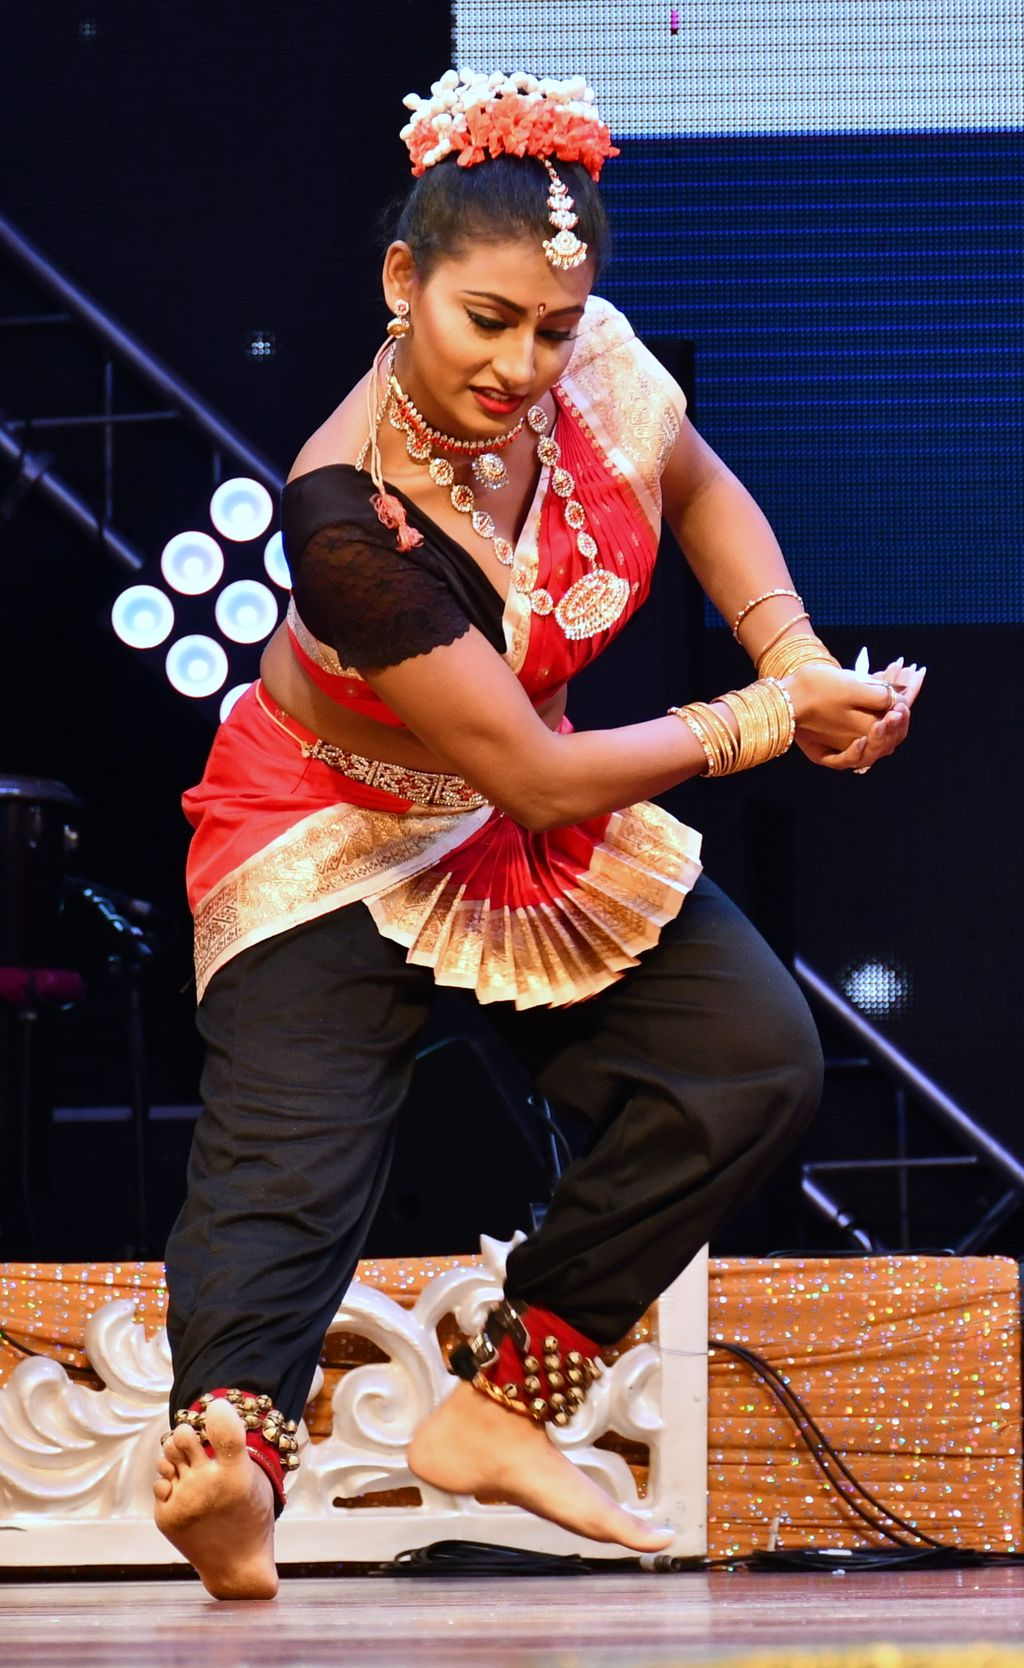 2018 Queen and winner of the talent competition Preejanjali Ria perform a dance during the talent section of the pageant.